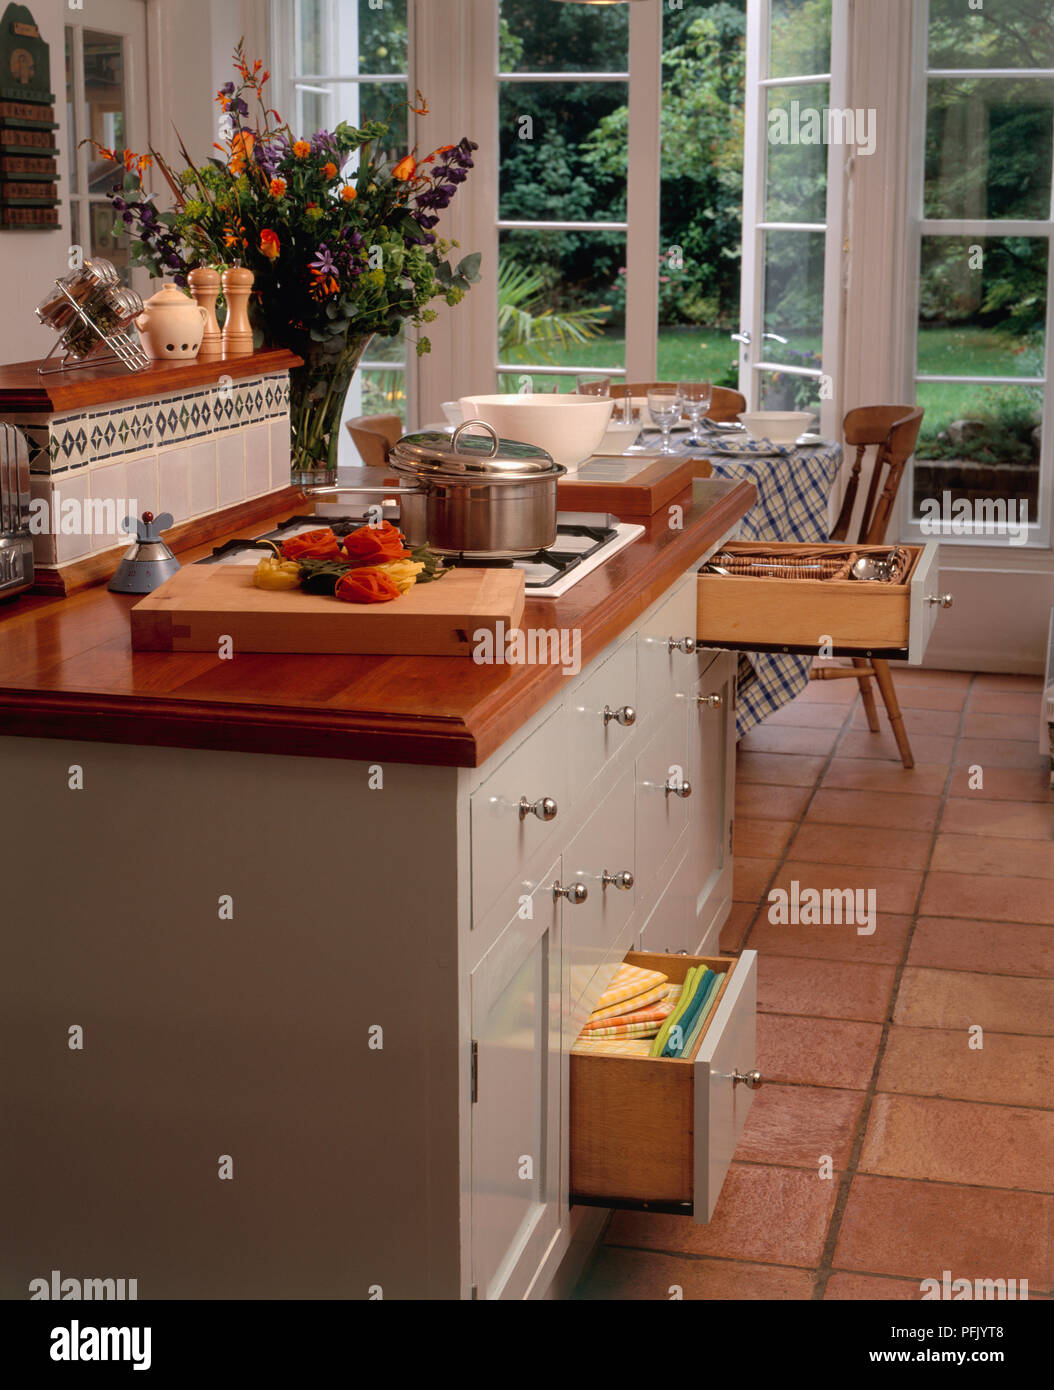 Kitchen in white and brown tones, with terracotta tiled floor, drawer unit underneath hob, and dining table with door open onto garden - Stock Image